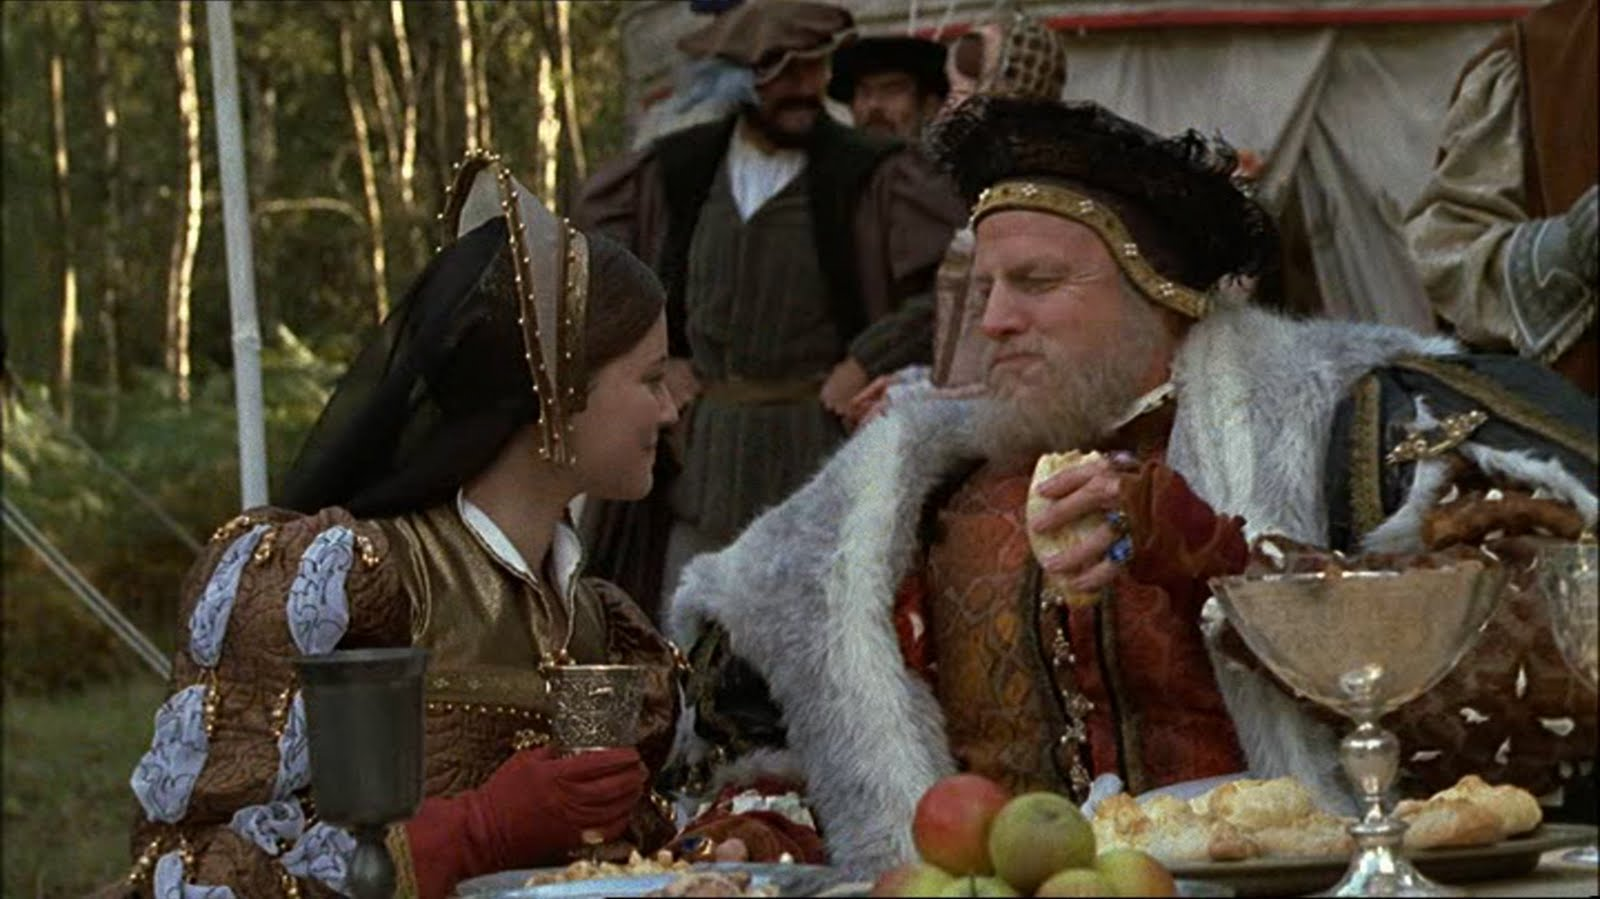 wives of henry viii The six wives of henry viii is a fictionalized account of the king henry viii's six marriages the film follows not only the wives and their personal drama, but also .